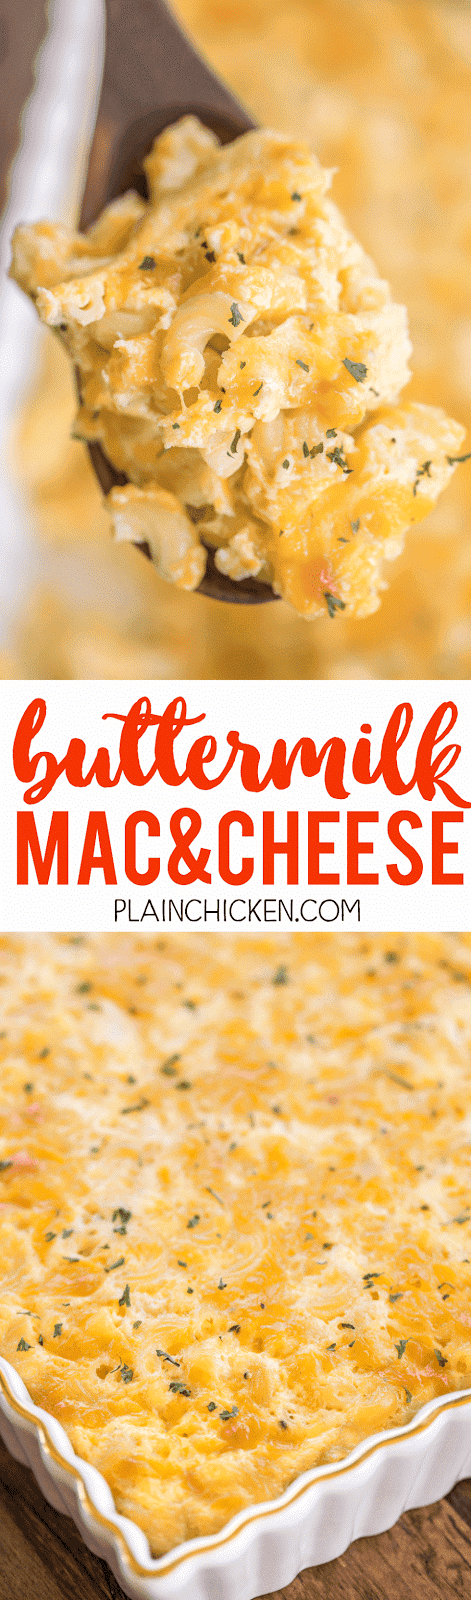 Buttermilk Mac and Cheese - CRAZY good!!! Only 5 ingredients! I wasn't sure how I would like the buttermilk, but it was SO good! Eggs, cheddar cheese, buttermilk, butter, macaroni. Can make ahead and freezer for later. Everyone RAVES about this yummy side dish recipe!